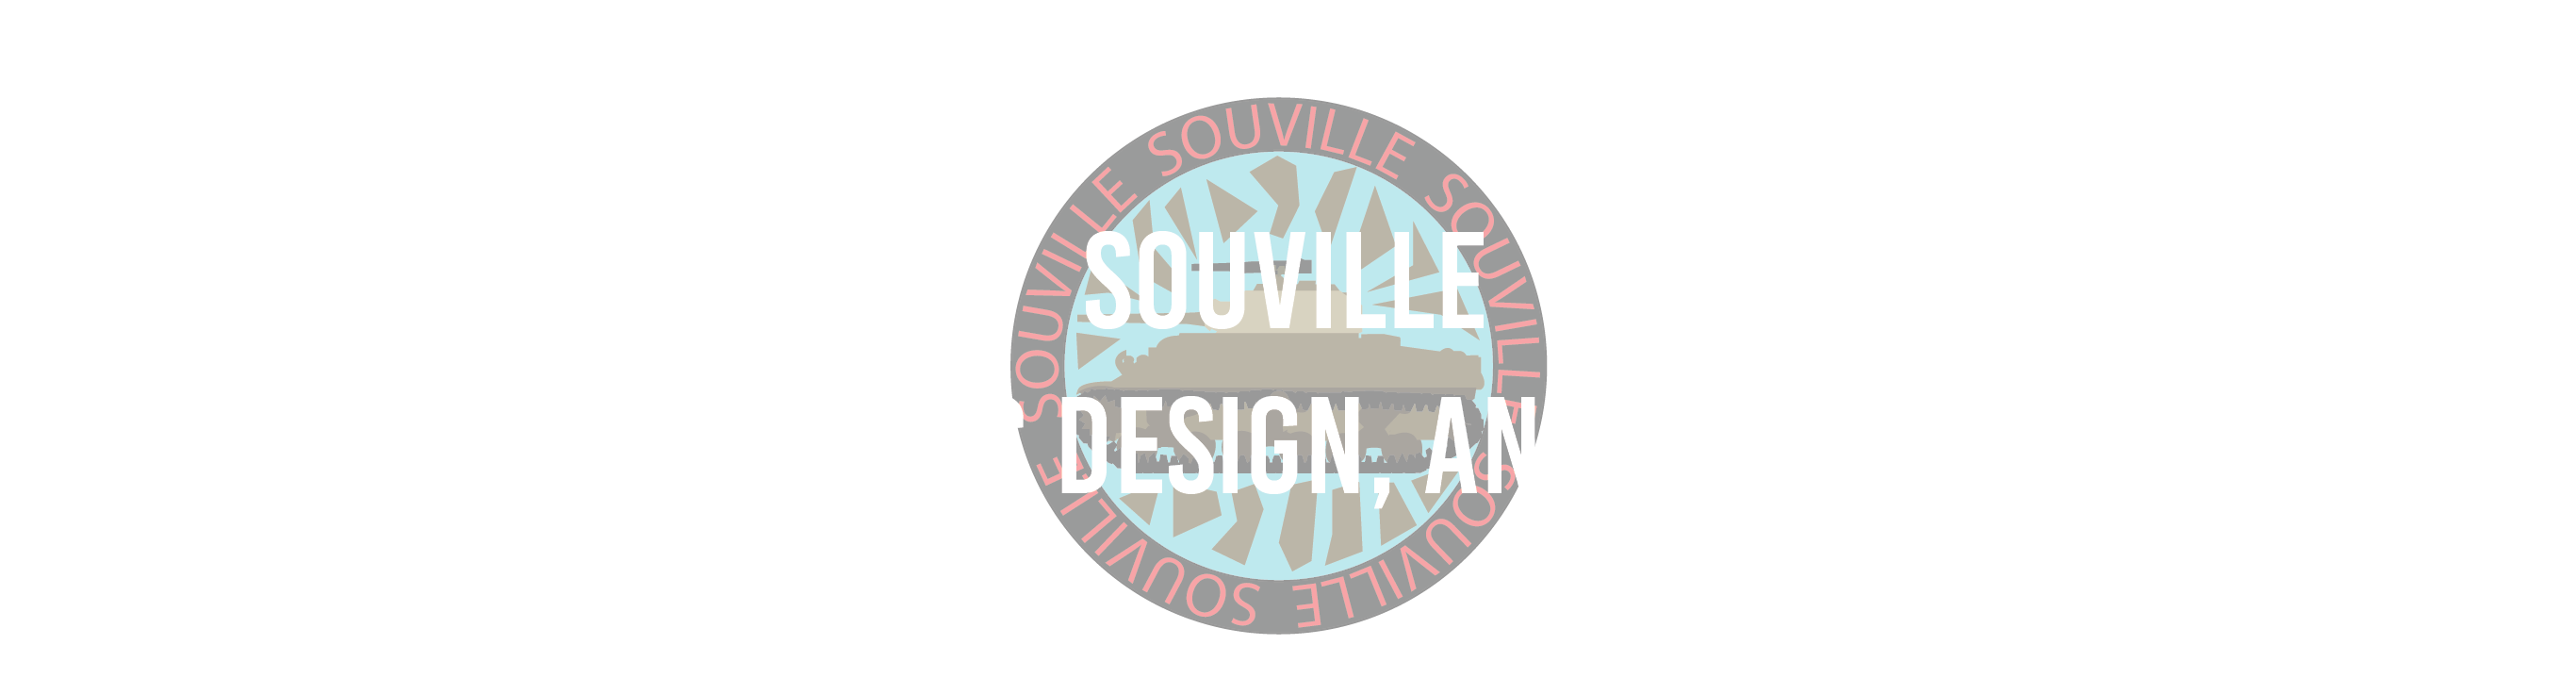 Souville Videography and Graphic Design